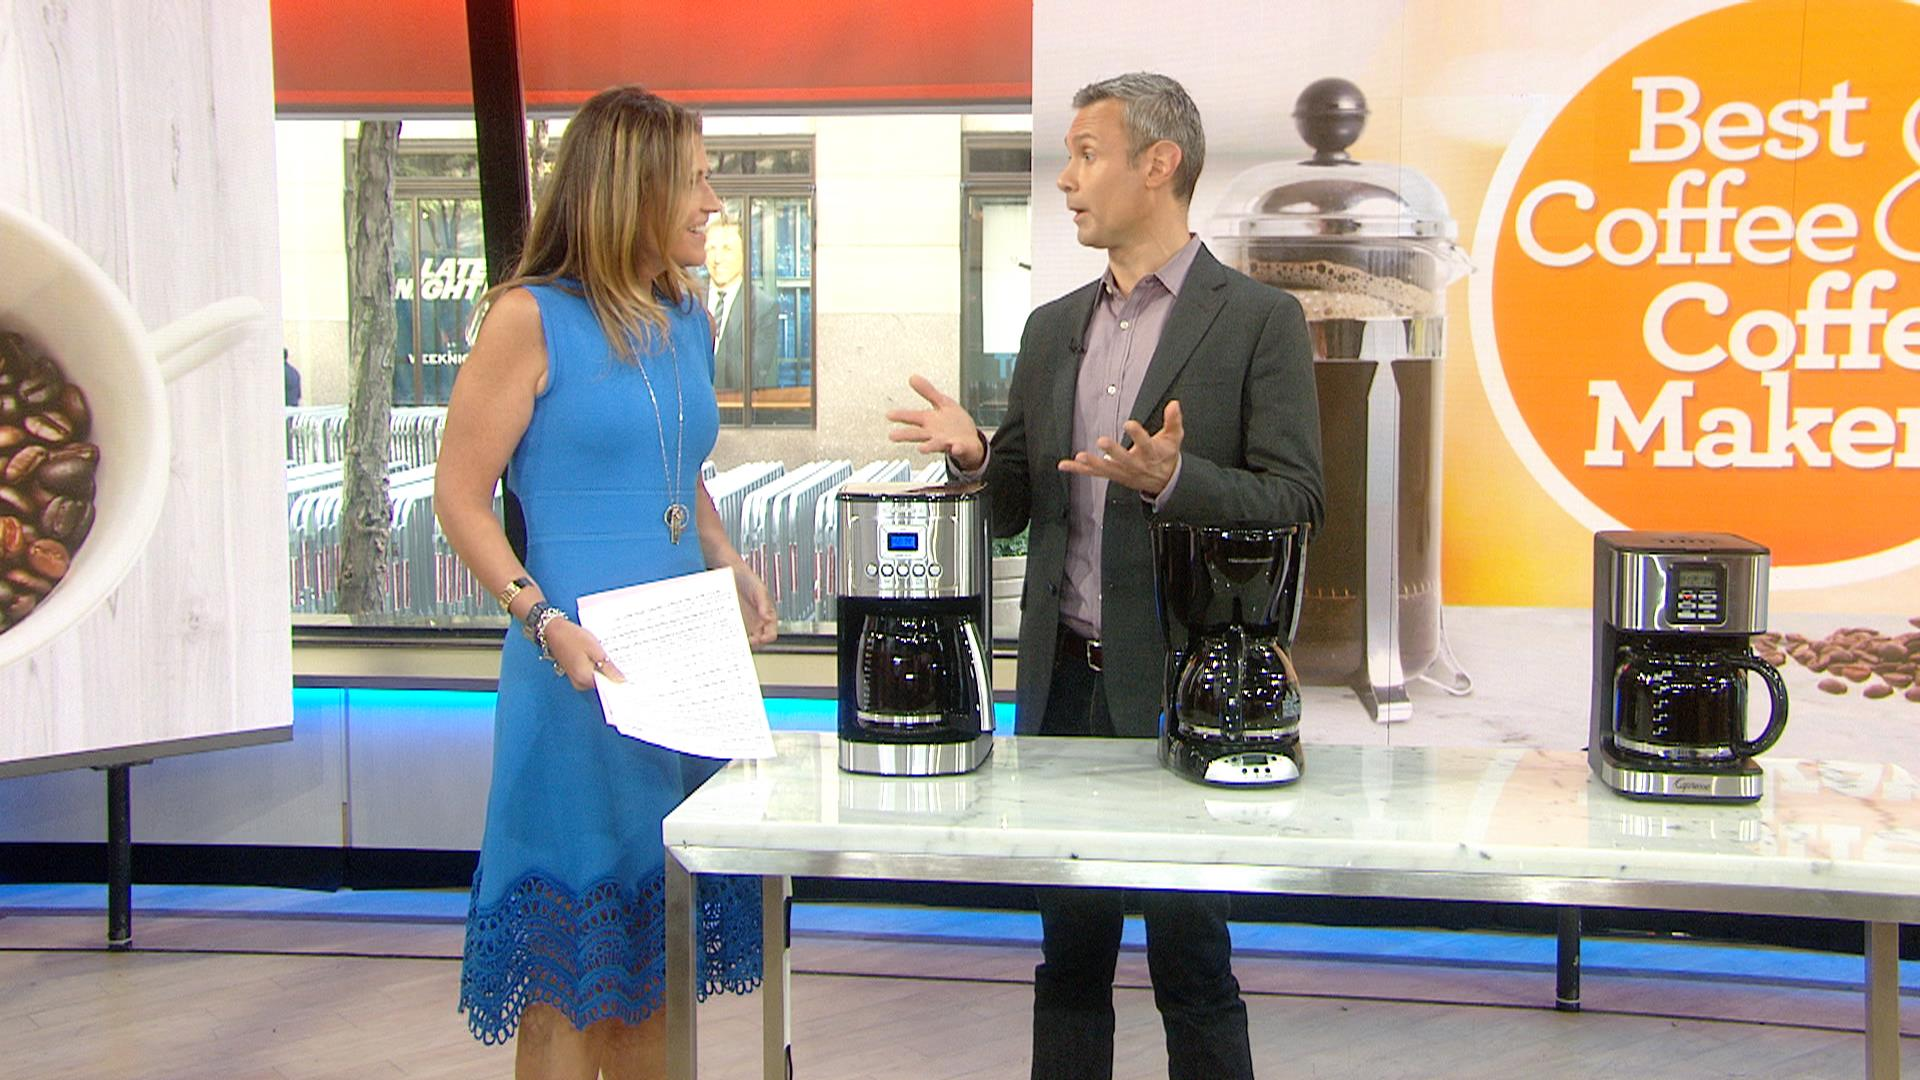 Consumer Reports Says The Top Rated Coffee Maker Is Nbc